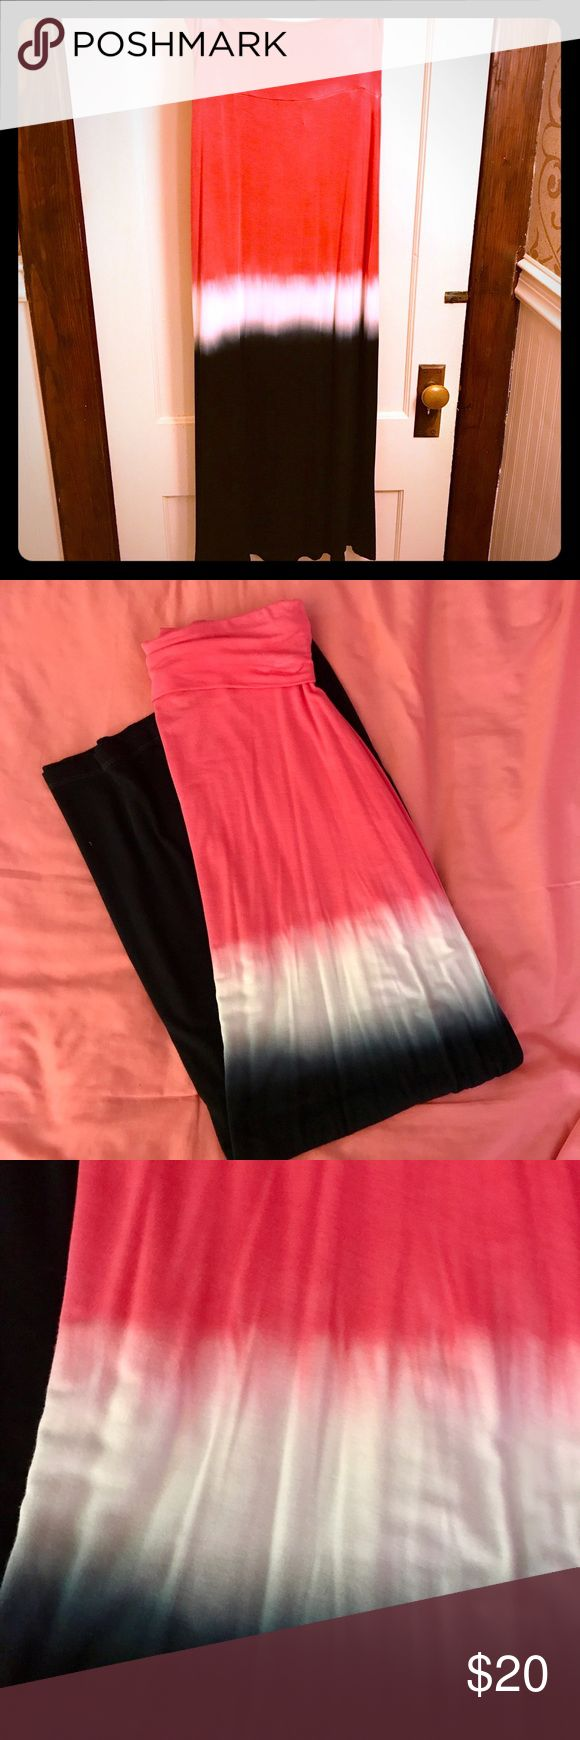 Maxi ombré folded waist full-length skirt A fun ombré tie-dyed striped full length fold over  maxi skirt by Design History.  A sexy color combo of magenta, white and navy stripes. Lovely tie dyed print knit skirt. This gorgeous skirt is totally sexy! 95% Rayon - 5% Spandex. Fold over waist band. Can even be worn as a sleeveless tube skirt as pictured. Skirt can be folded to adjust length.  Last picture shows similar skirt of how it looks on in heels. Worn only once.  It's just too big for…